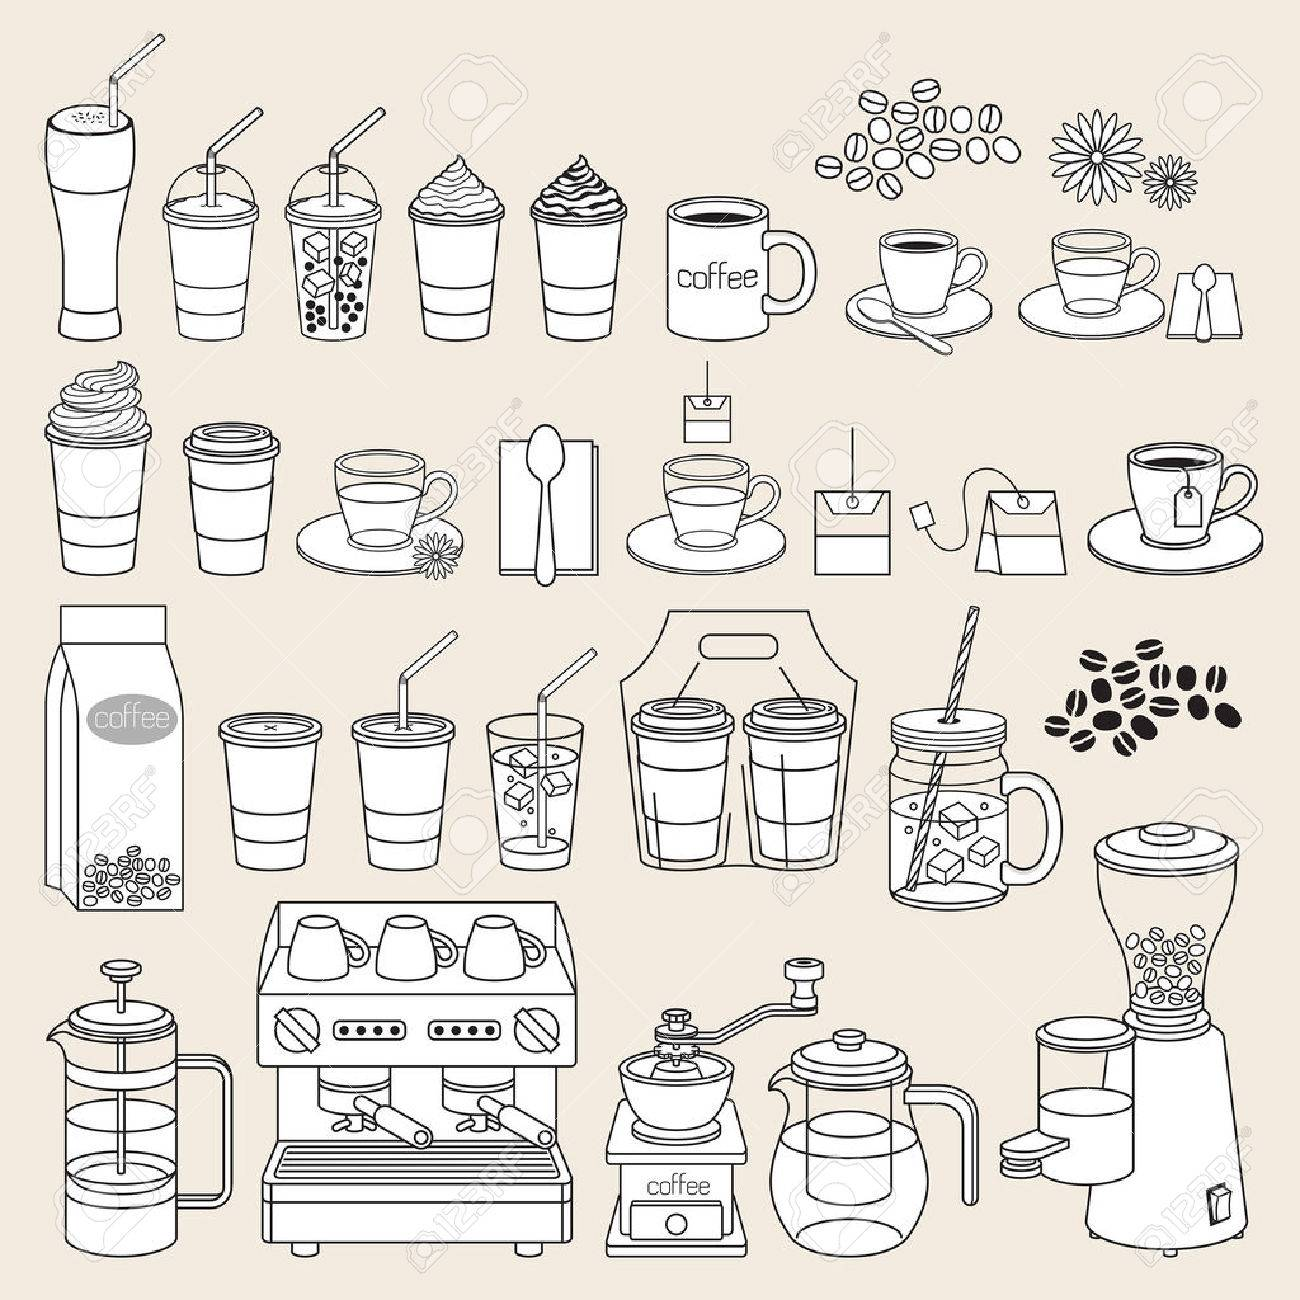 Coffee doodle icon style. Vector illustration. - 57131462